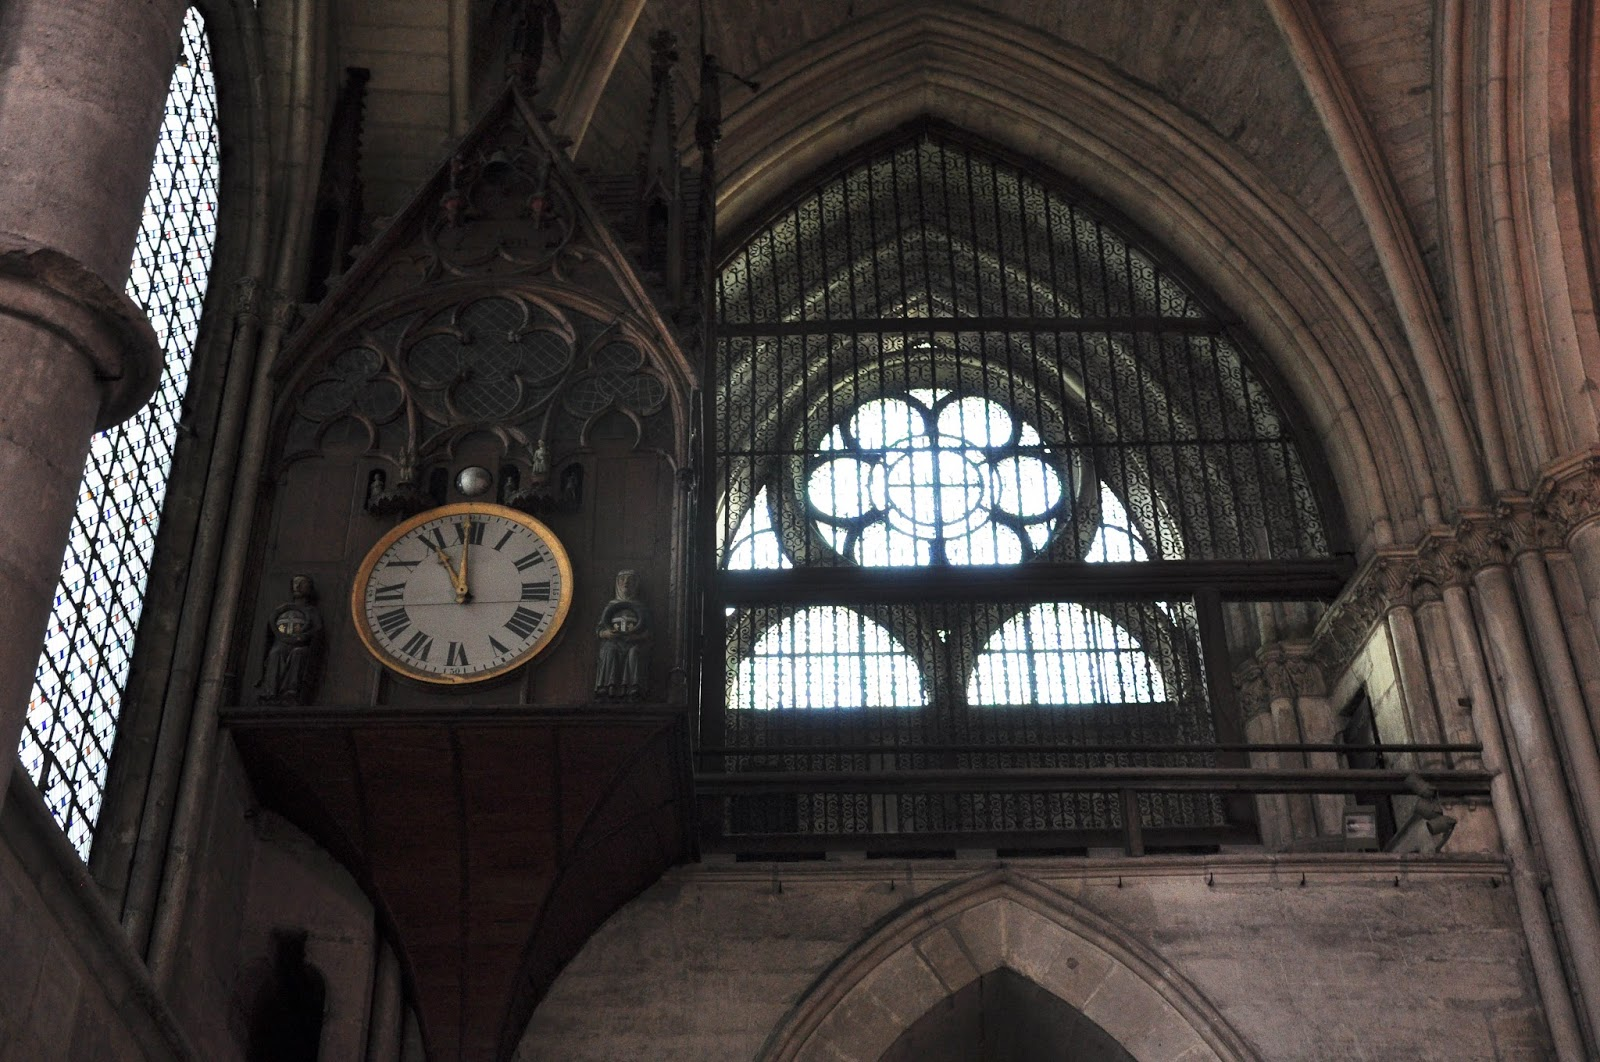 The clock inside the cathedral, Reims Cathedral, Reims, France